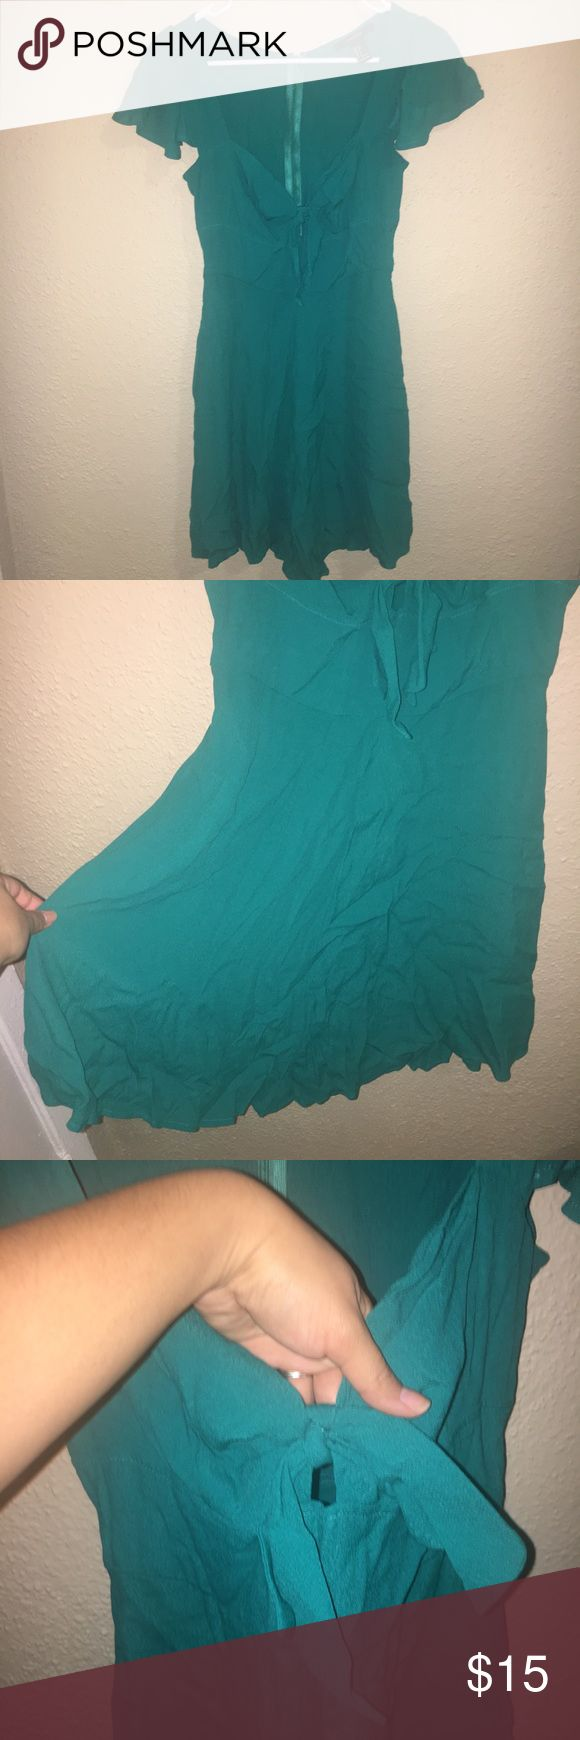 Turquoise Key Hole Tie Dress with Sleeves New, but never worn. It didn't fit me and was stored away when I moved. It's in amazing condition, no tears or stains. The picture above illustrates how the front of the dress fits on. A line skirt that begins at the waist, which really accentuates a thin long figure! Forever 21 Dresses Mini